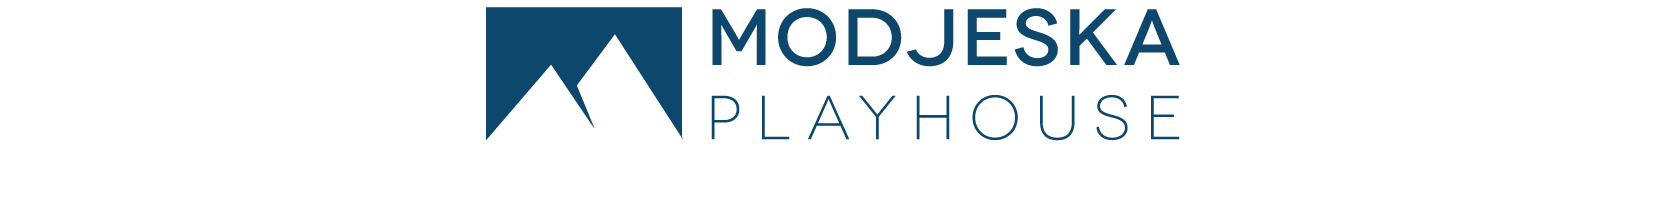 Modjeska Playhouse